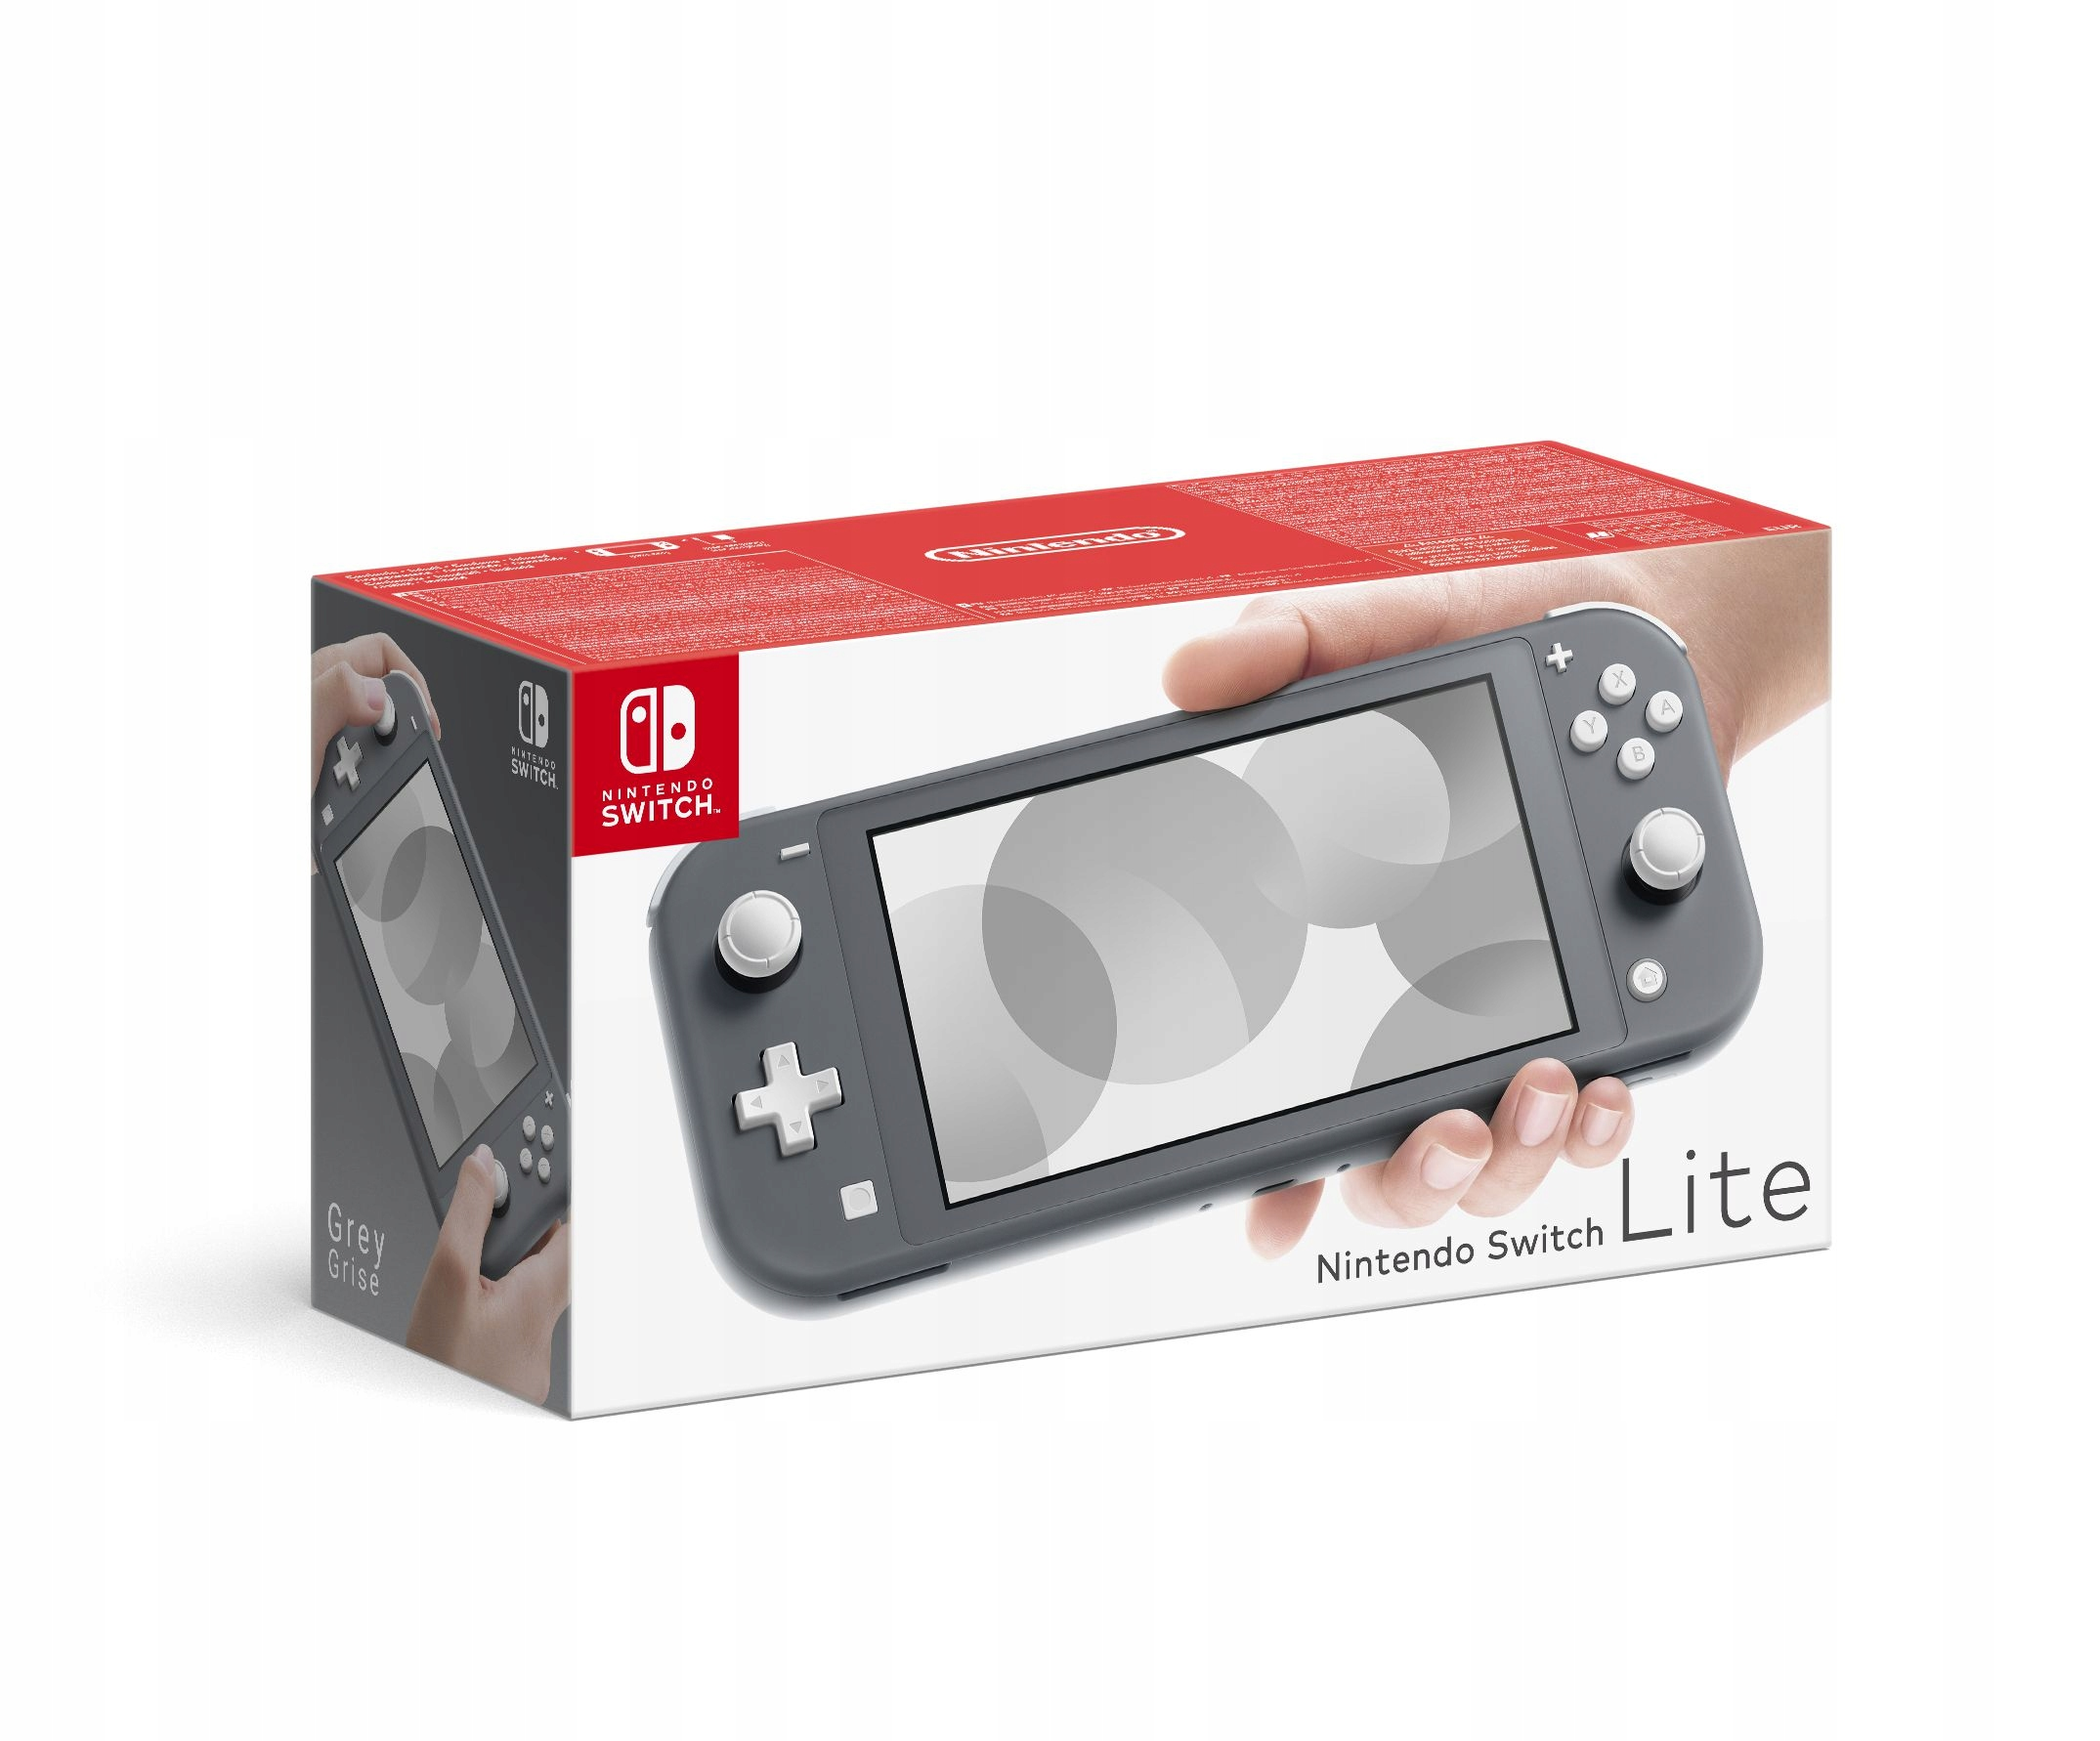 Item GAME CONSOLE-NINTENDO SWITCH LITE GRAY